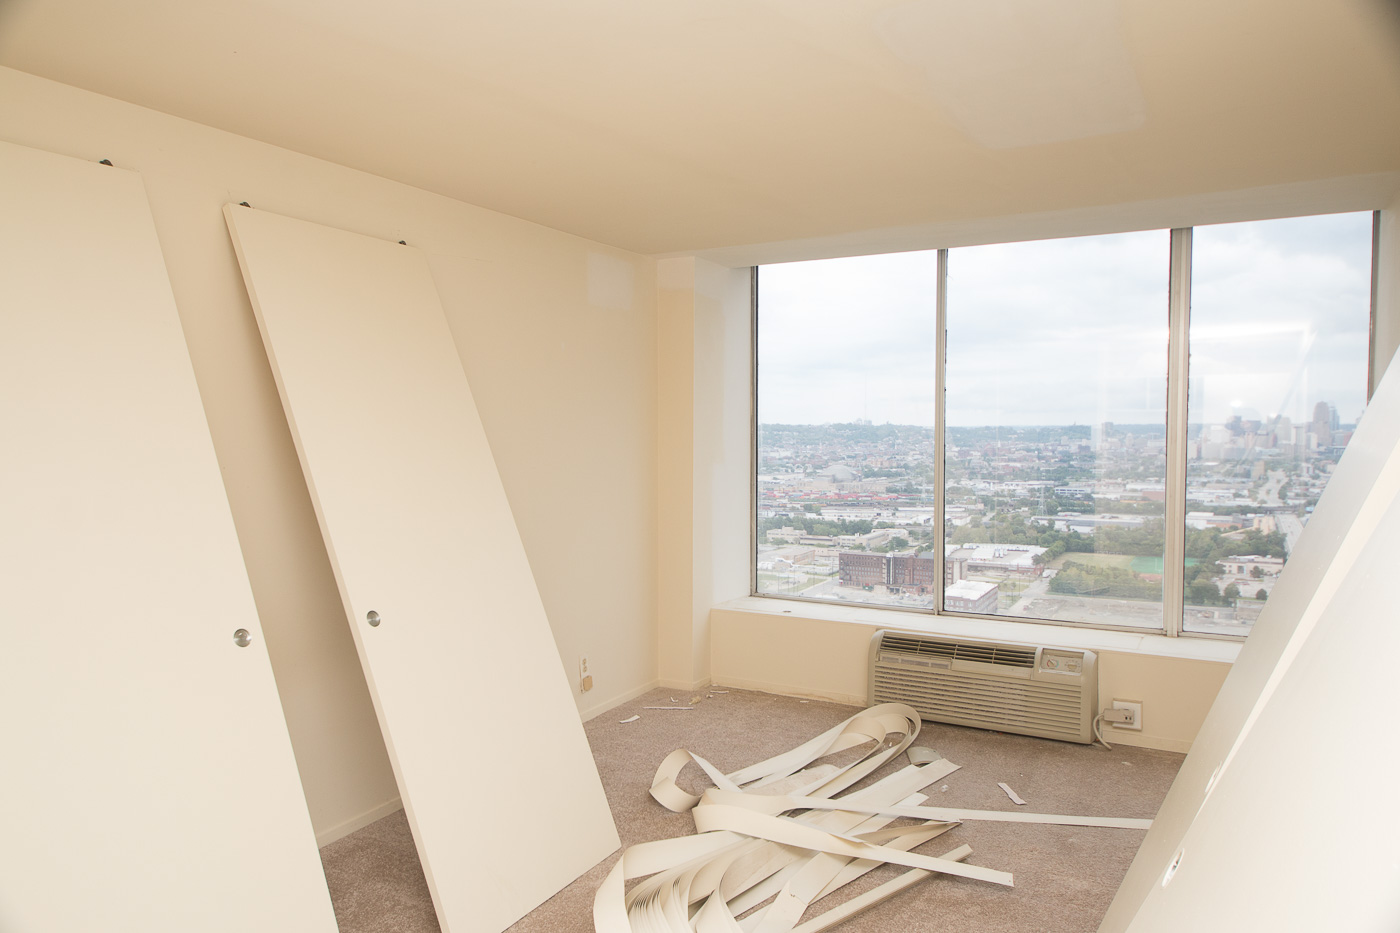 Condo Renovation Ideas